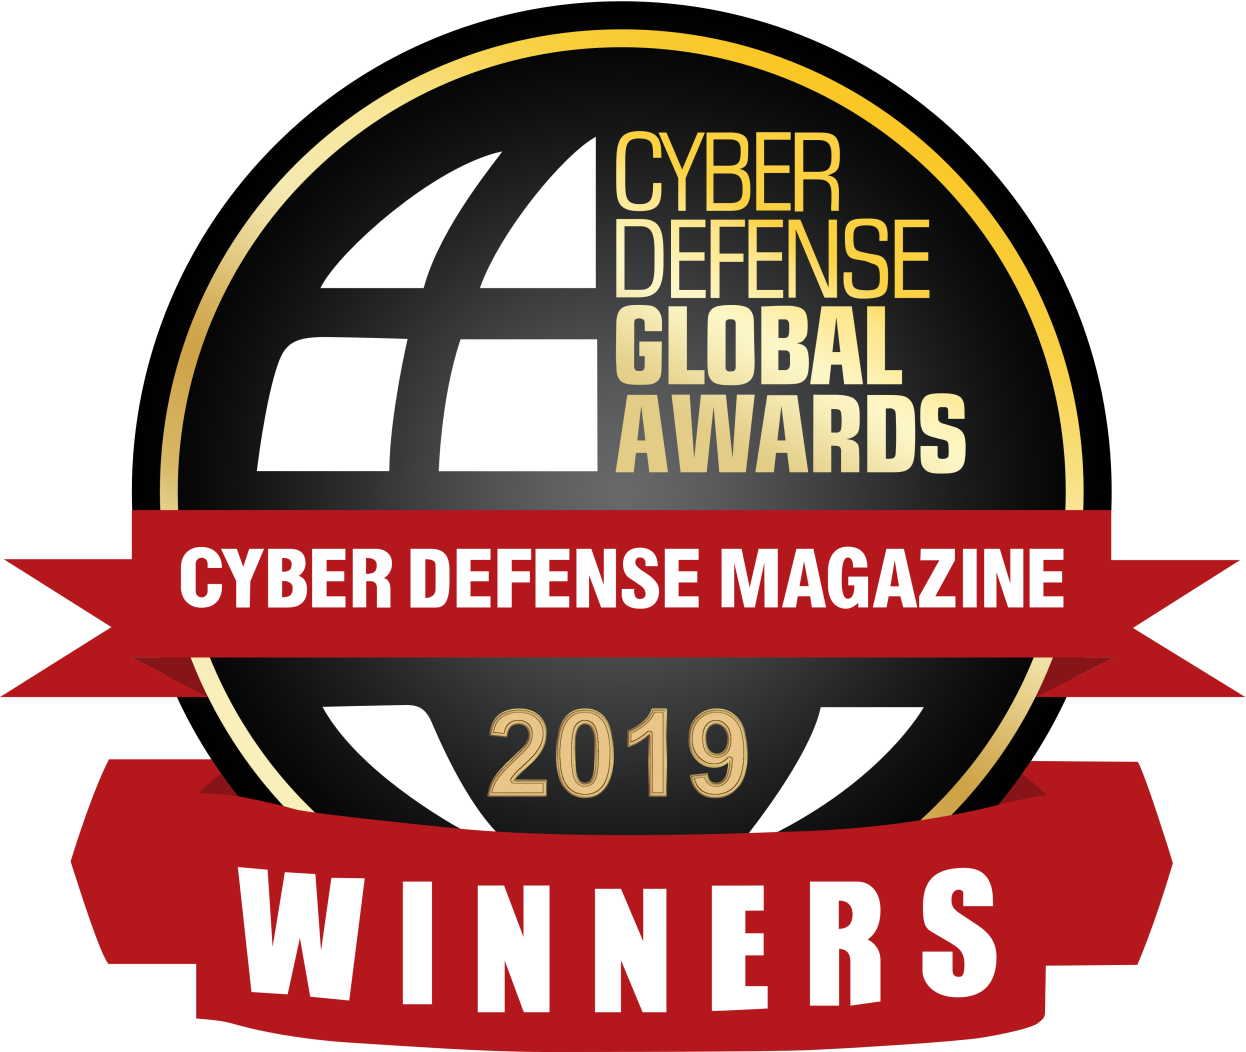 Cyber Defense Global Awards Winners For 2019 Cyber Defense Awards